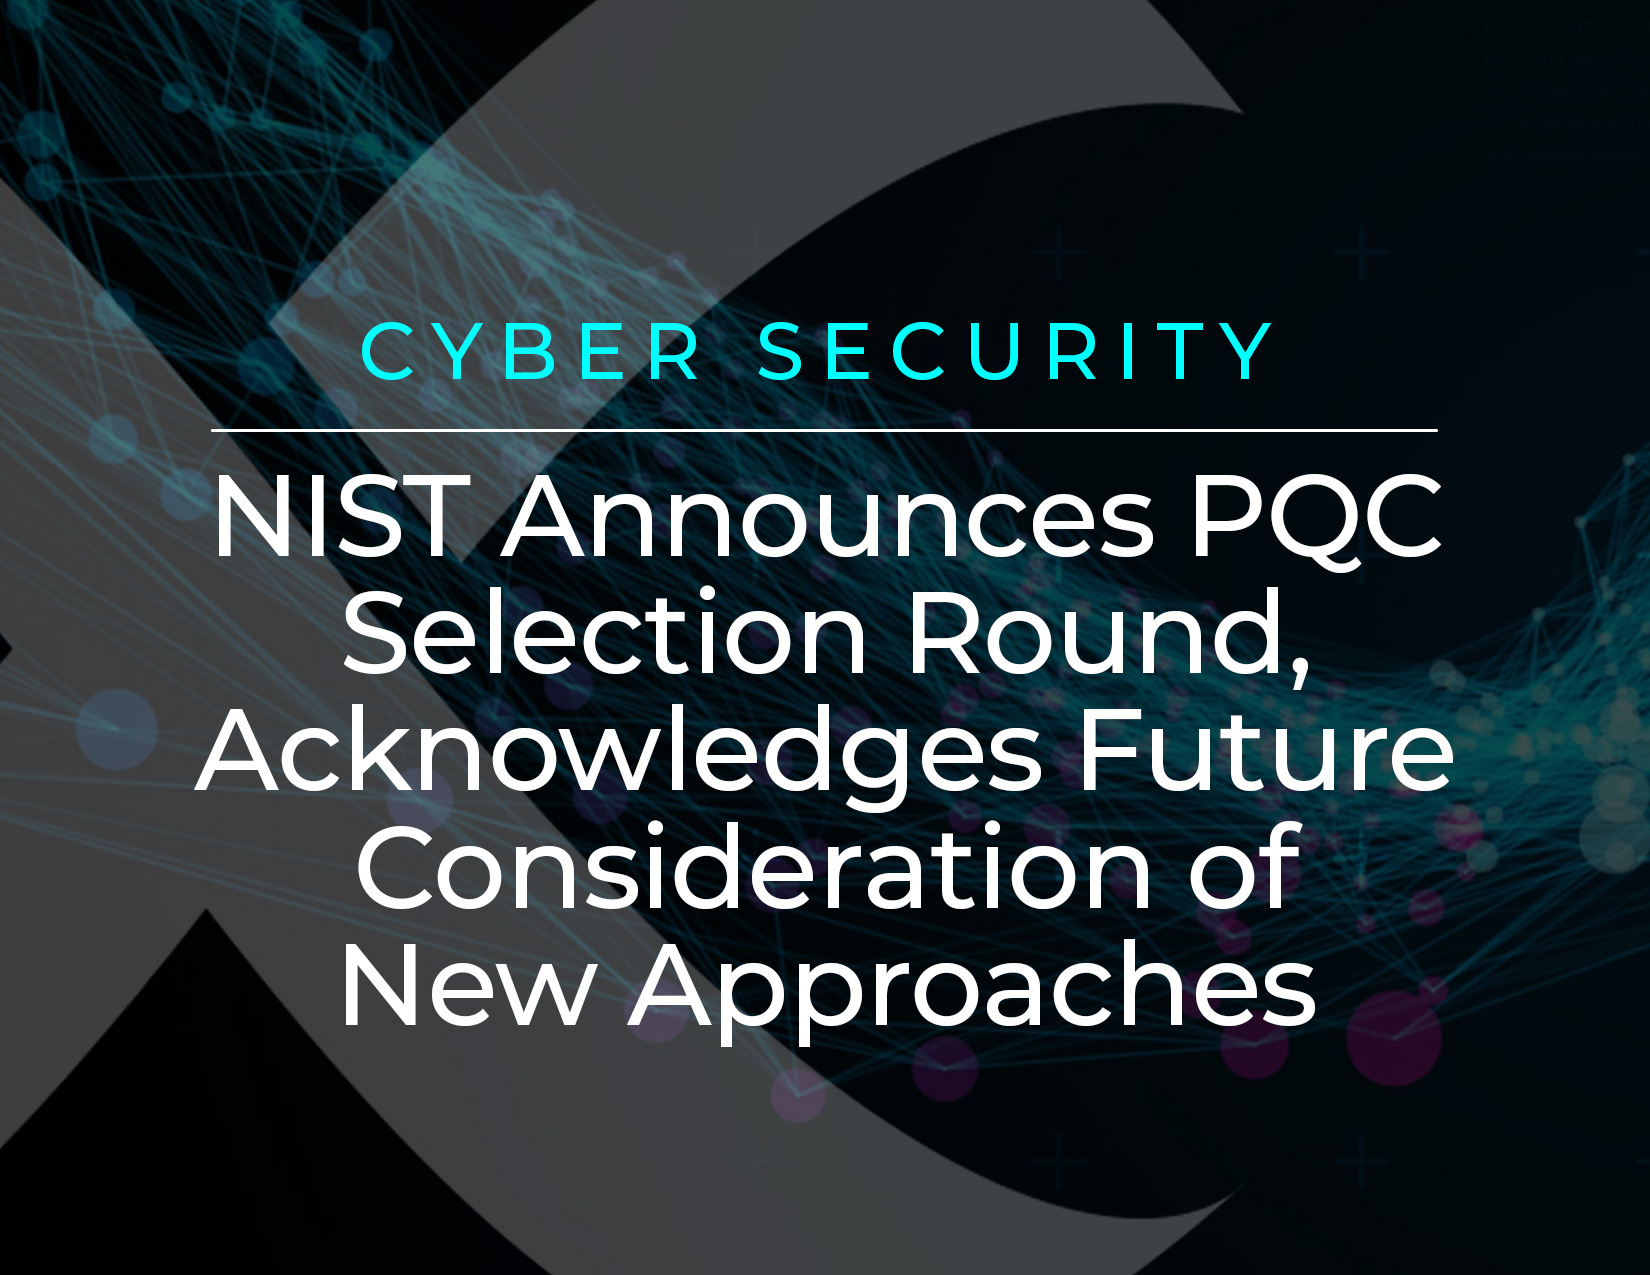 NIST Announces PQC Selection Round